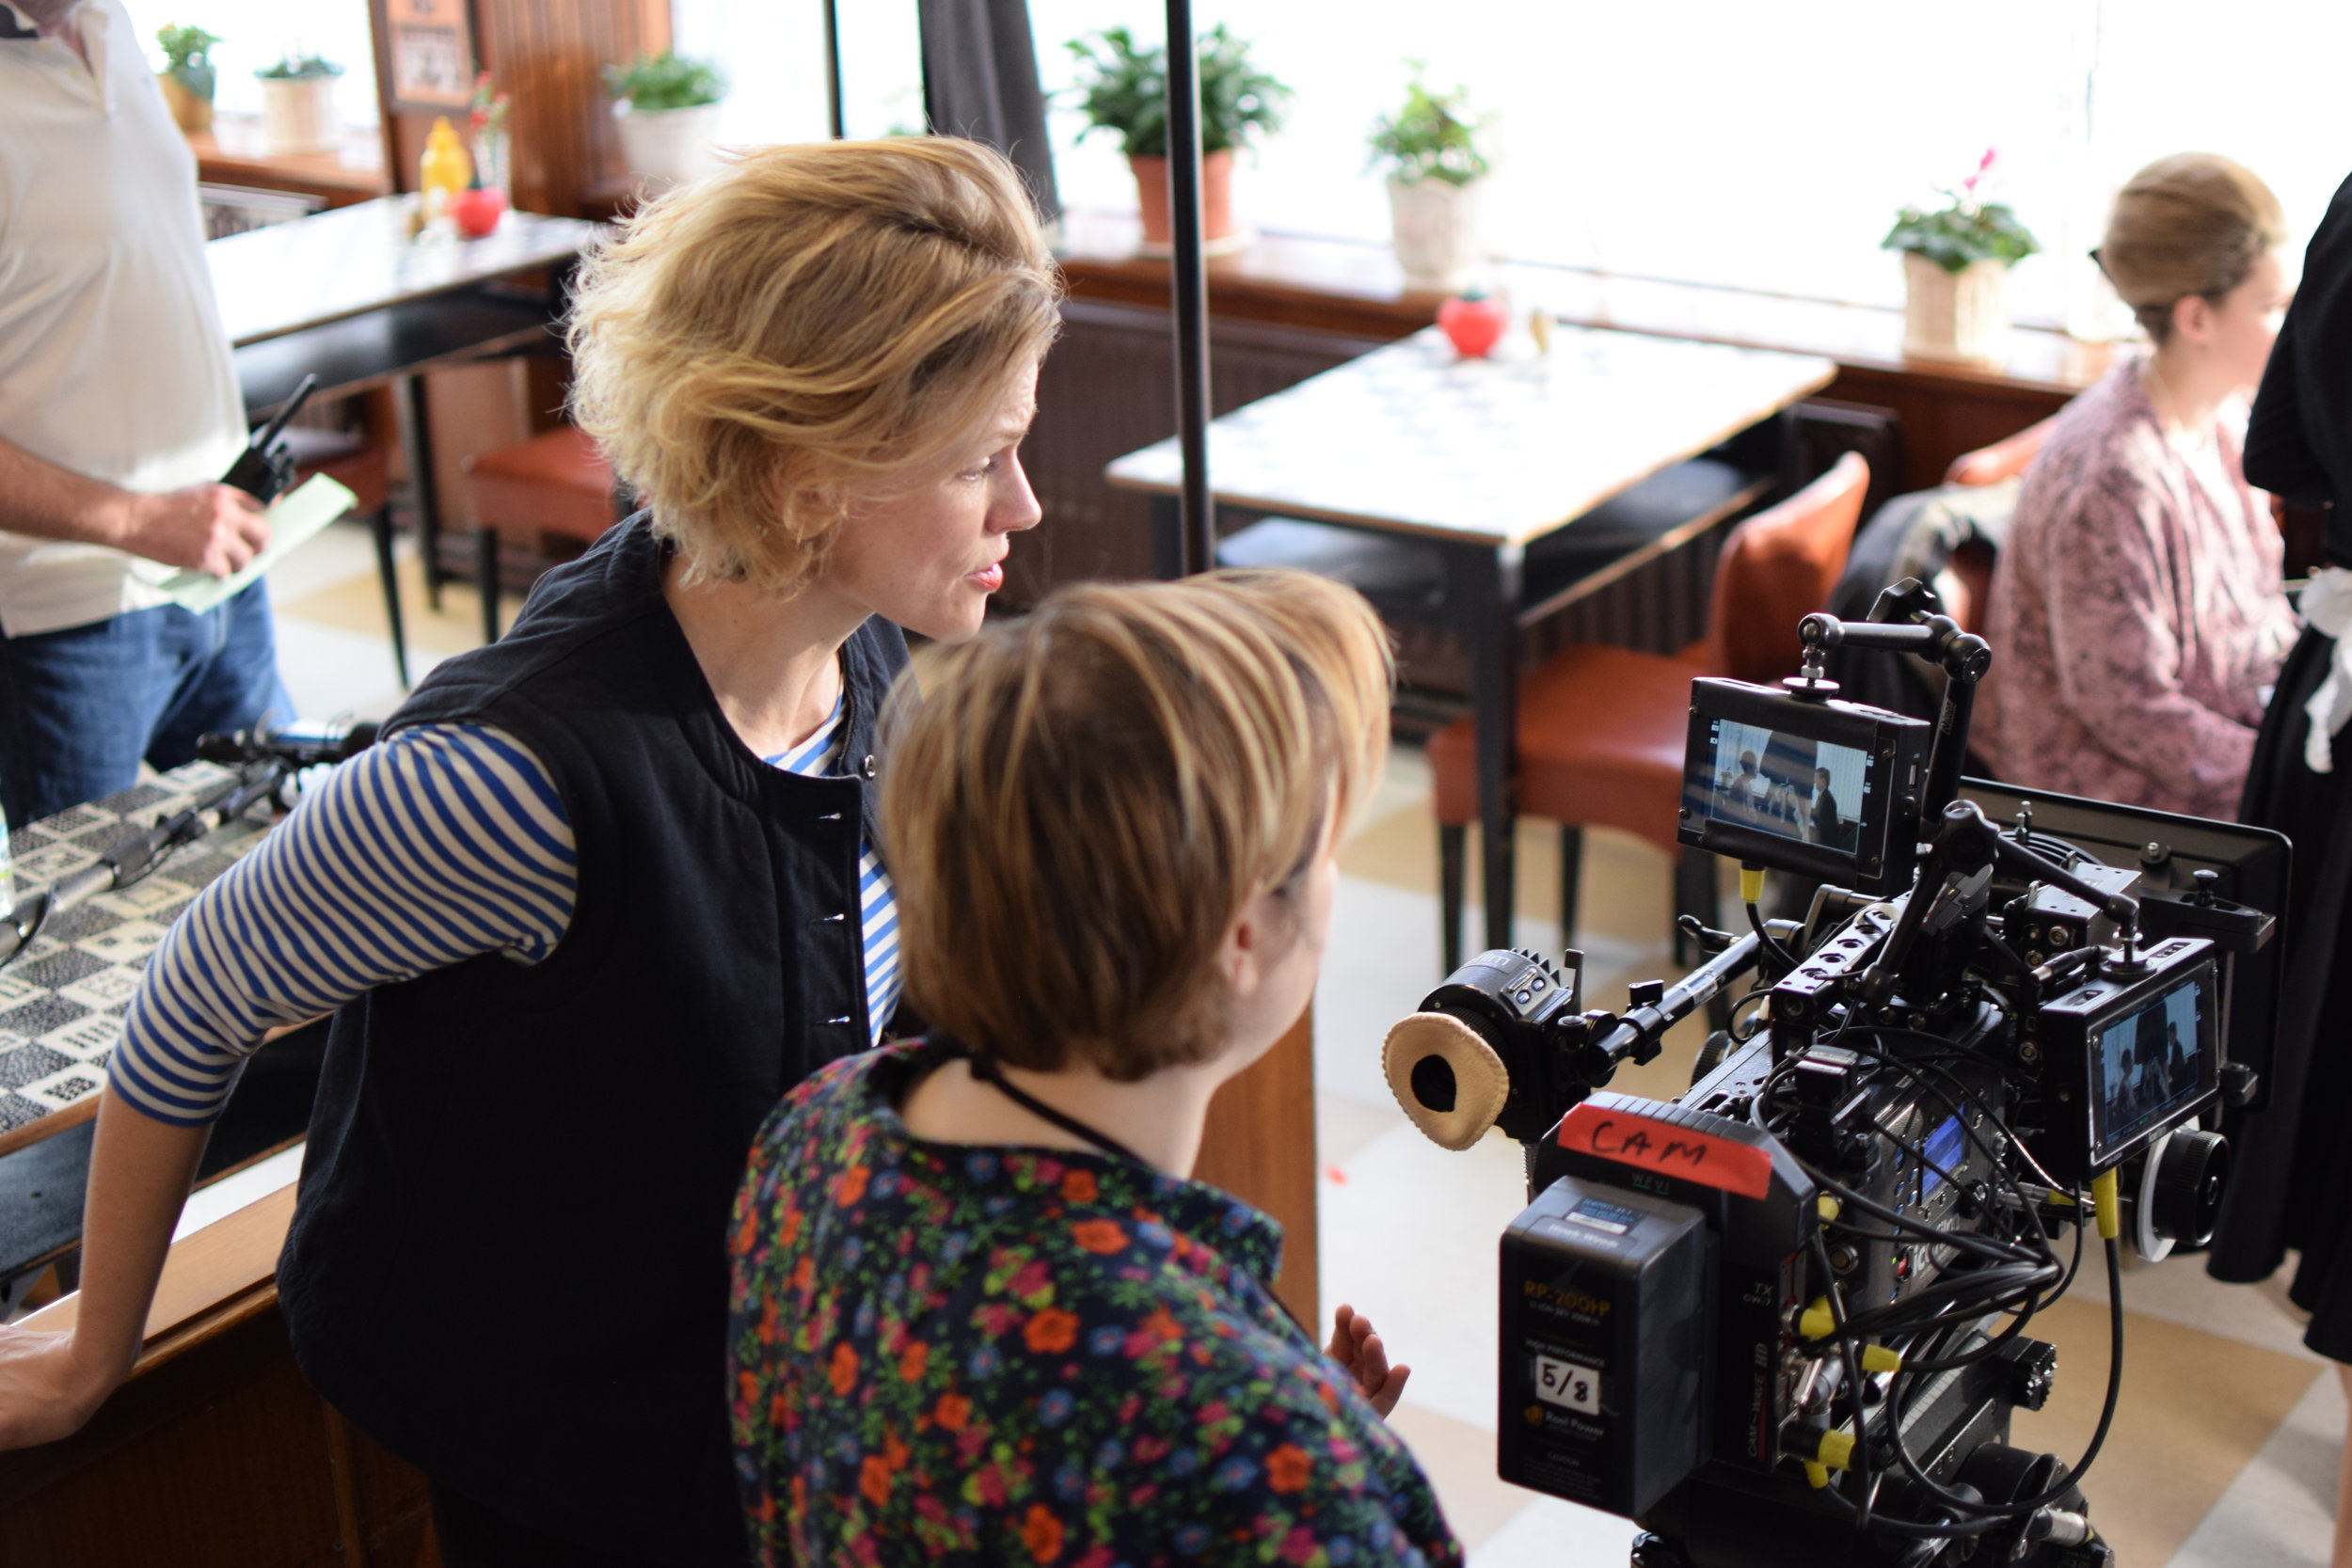 Time Away - Vox Pictures' short film, 'Time Away', which marks the directorial debut of acclaimed actor Maxine Peake, will receive its world premiere at the Edinburgh International Film Festival on 23rd June 2018. Tickets are available here.